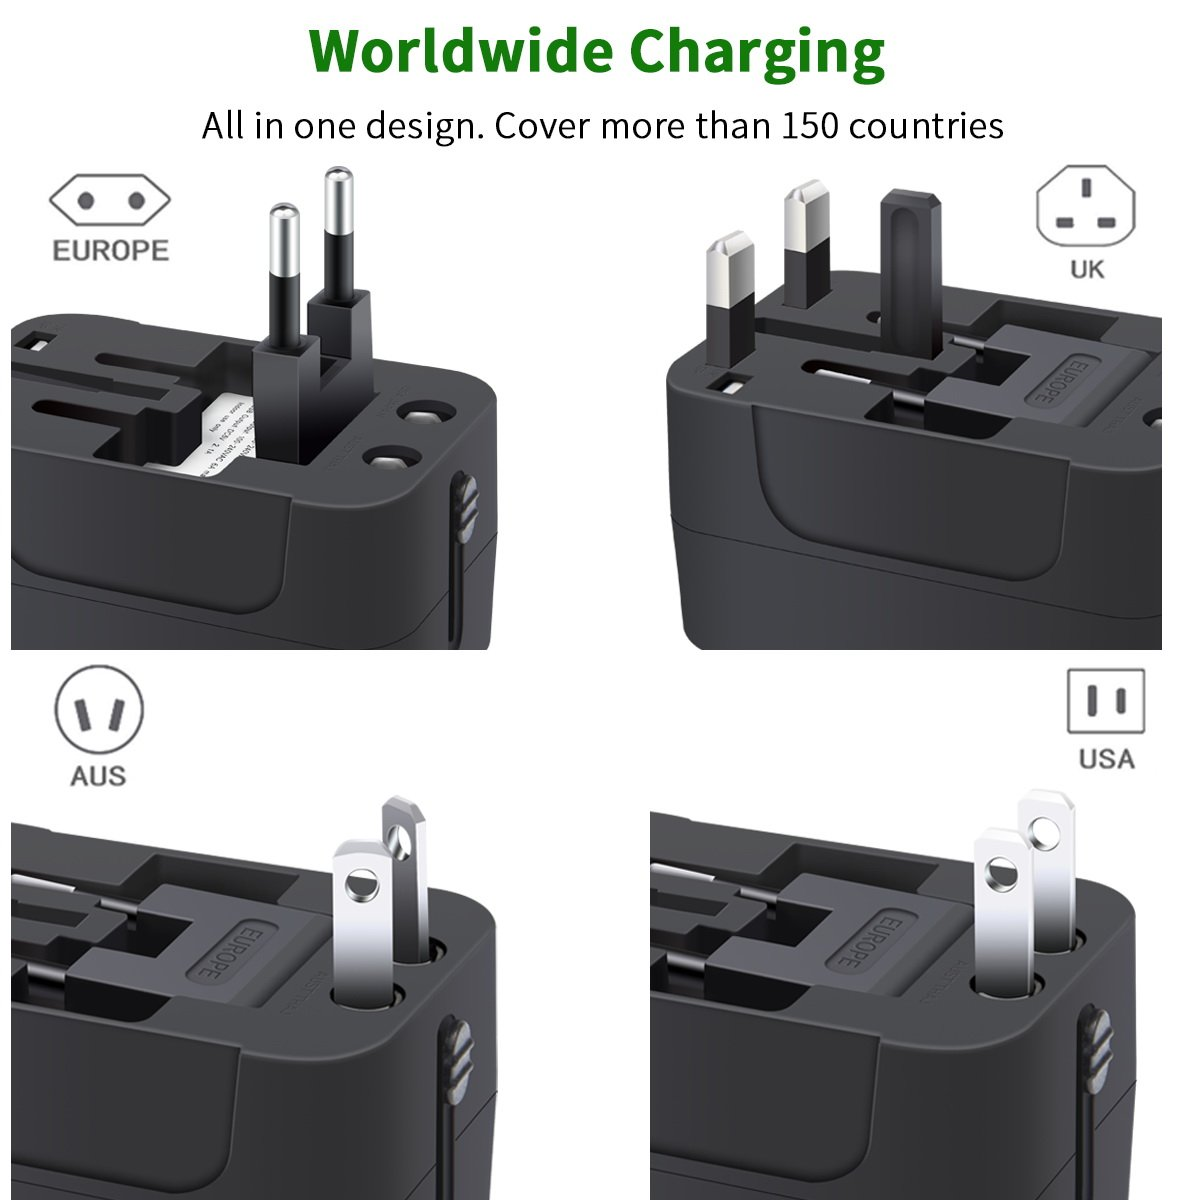 Travel Adapter, Worldwide All in One Universal Travel Adaptor Wall AC Power Plug Adapter Wall Charger with Dual USB Charging Ports for USA EU UK AUS Cell Phone Laptop by MINGTONG (Image #2)